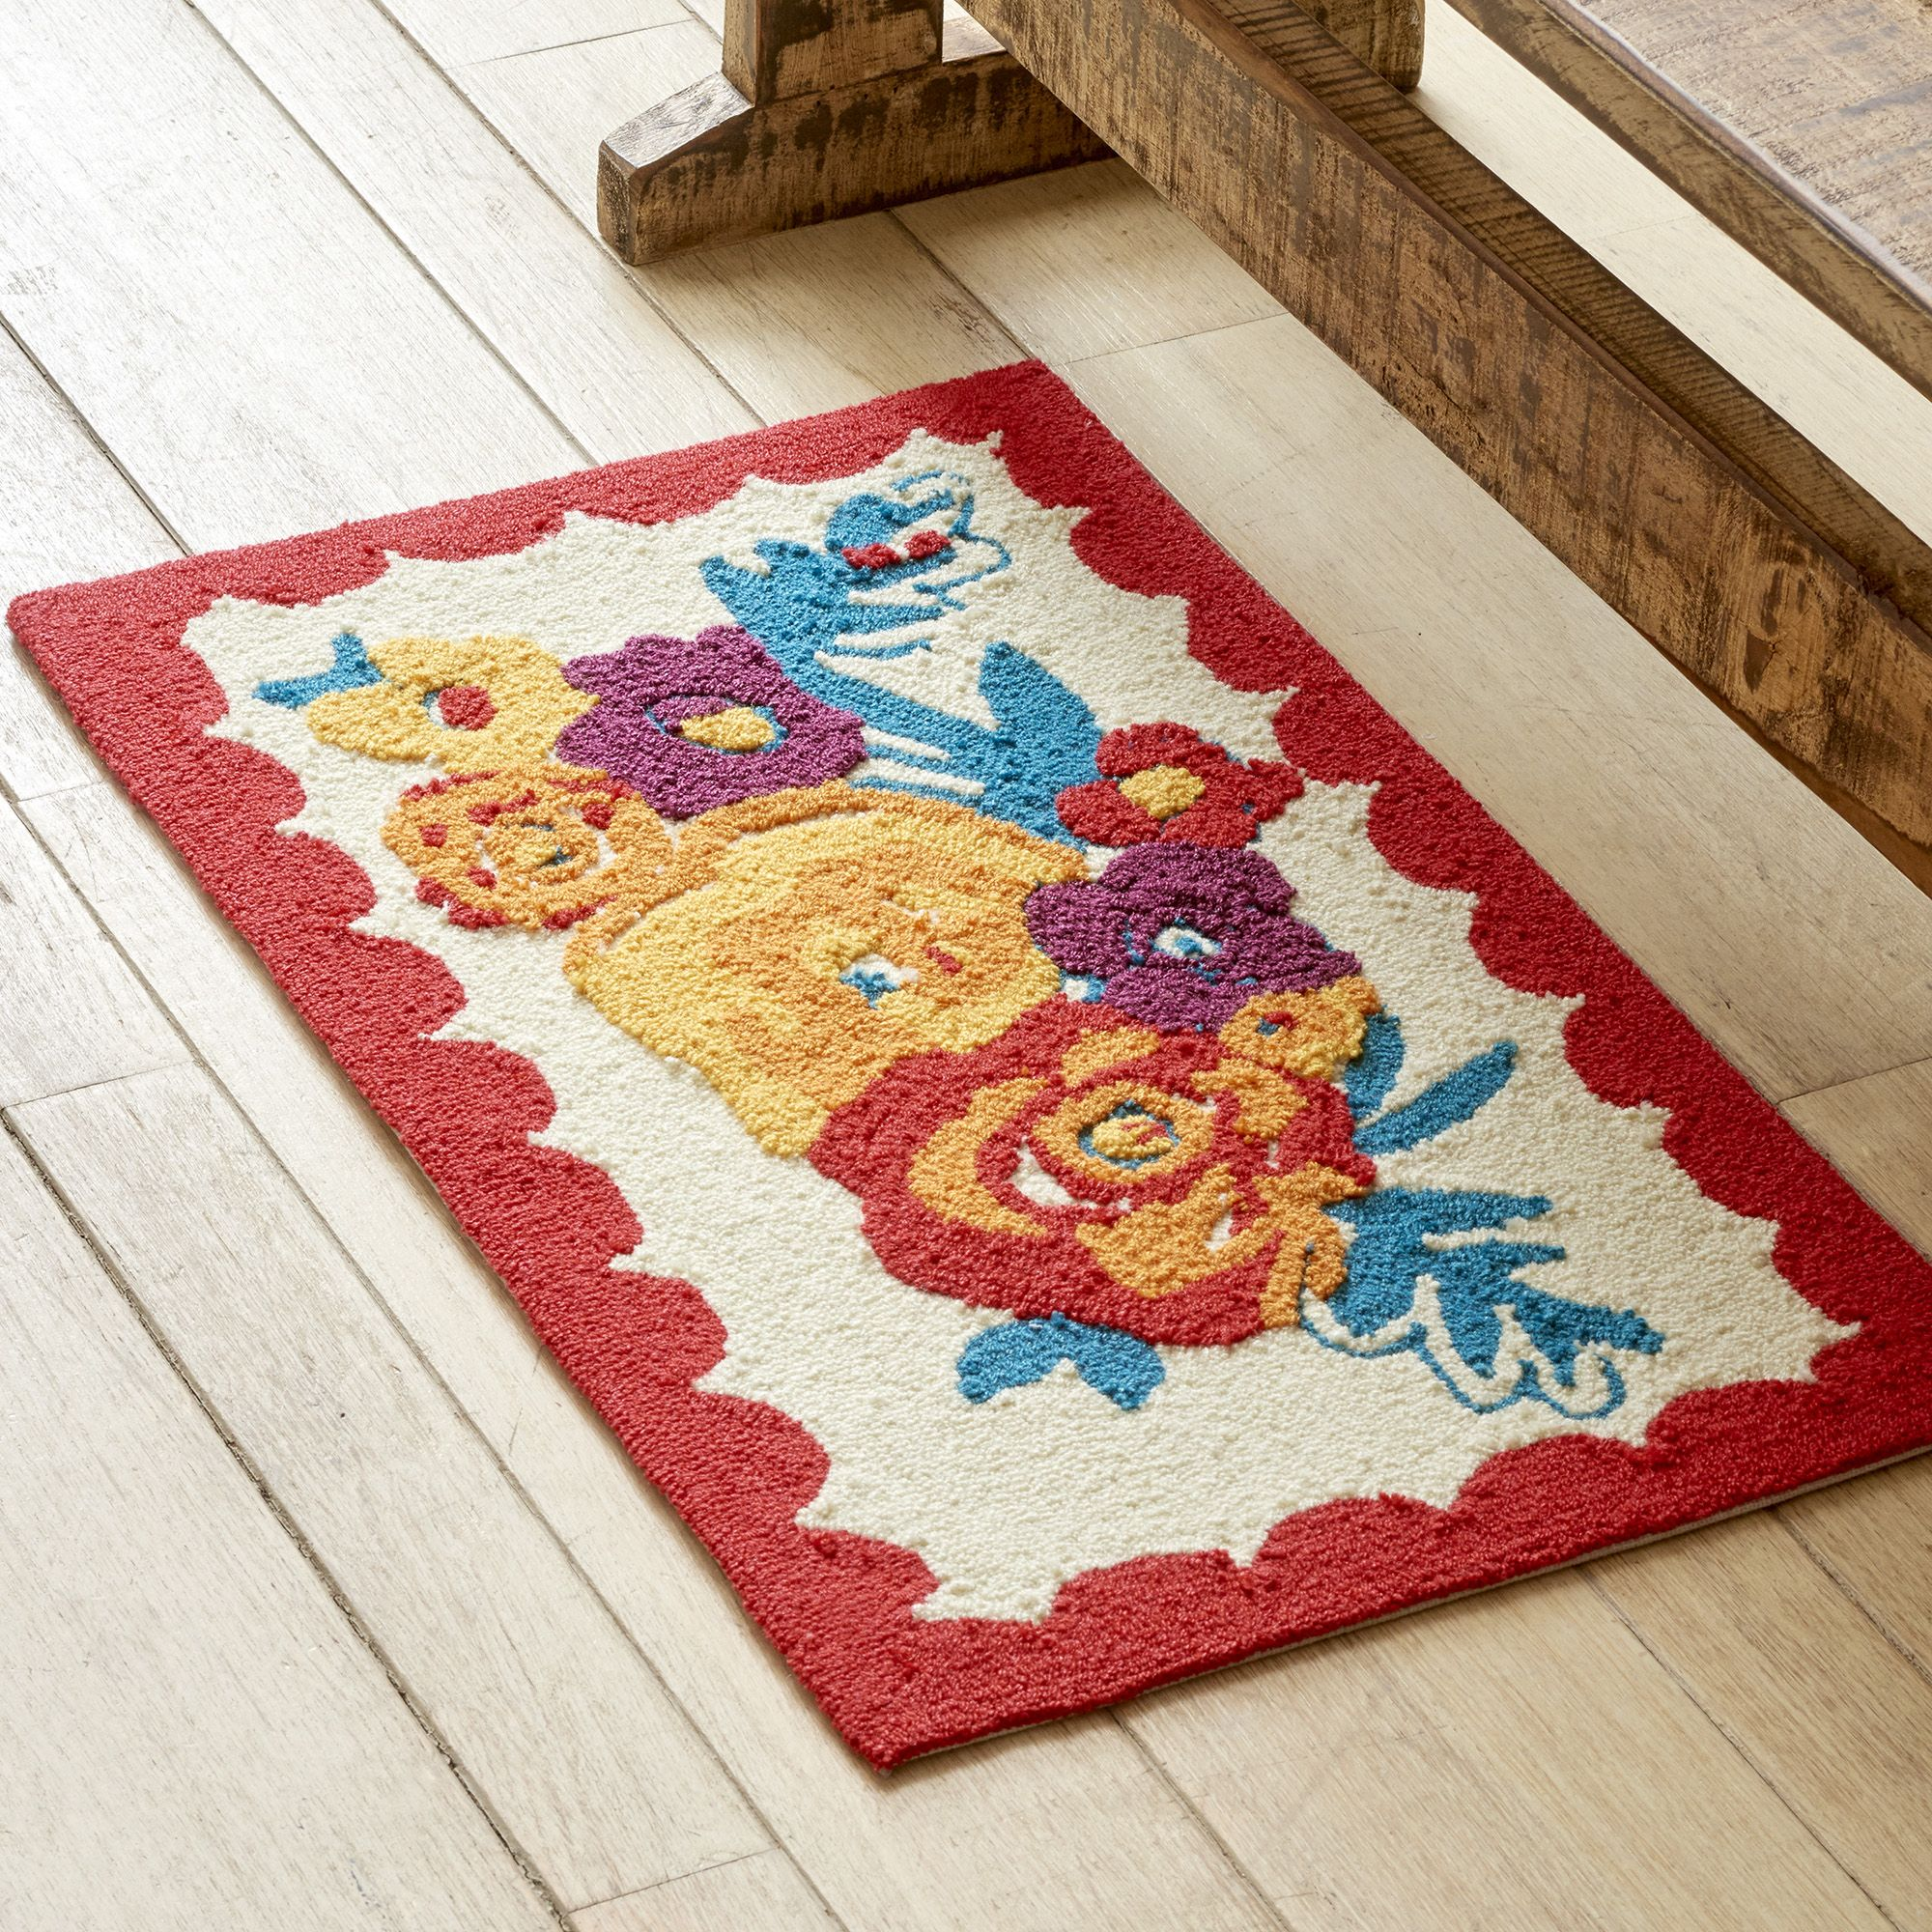 The Pioneer Woman Flea Market Rug 18 W X 30 L Available In Multiple Sizes Walmart Com Pioneer Woman Flea Markets Pioneer Woman Kitchen Pioneer Woman